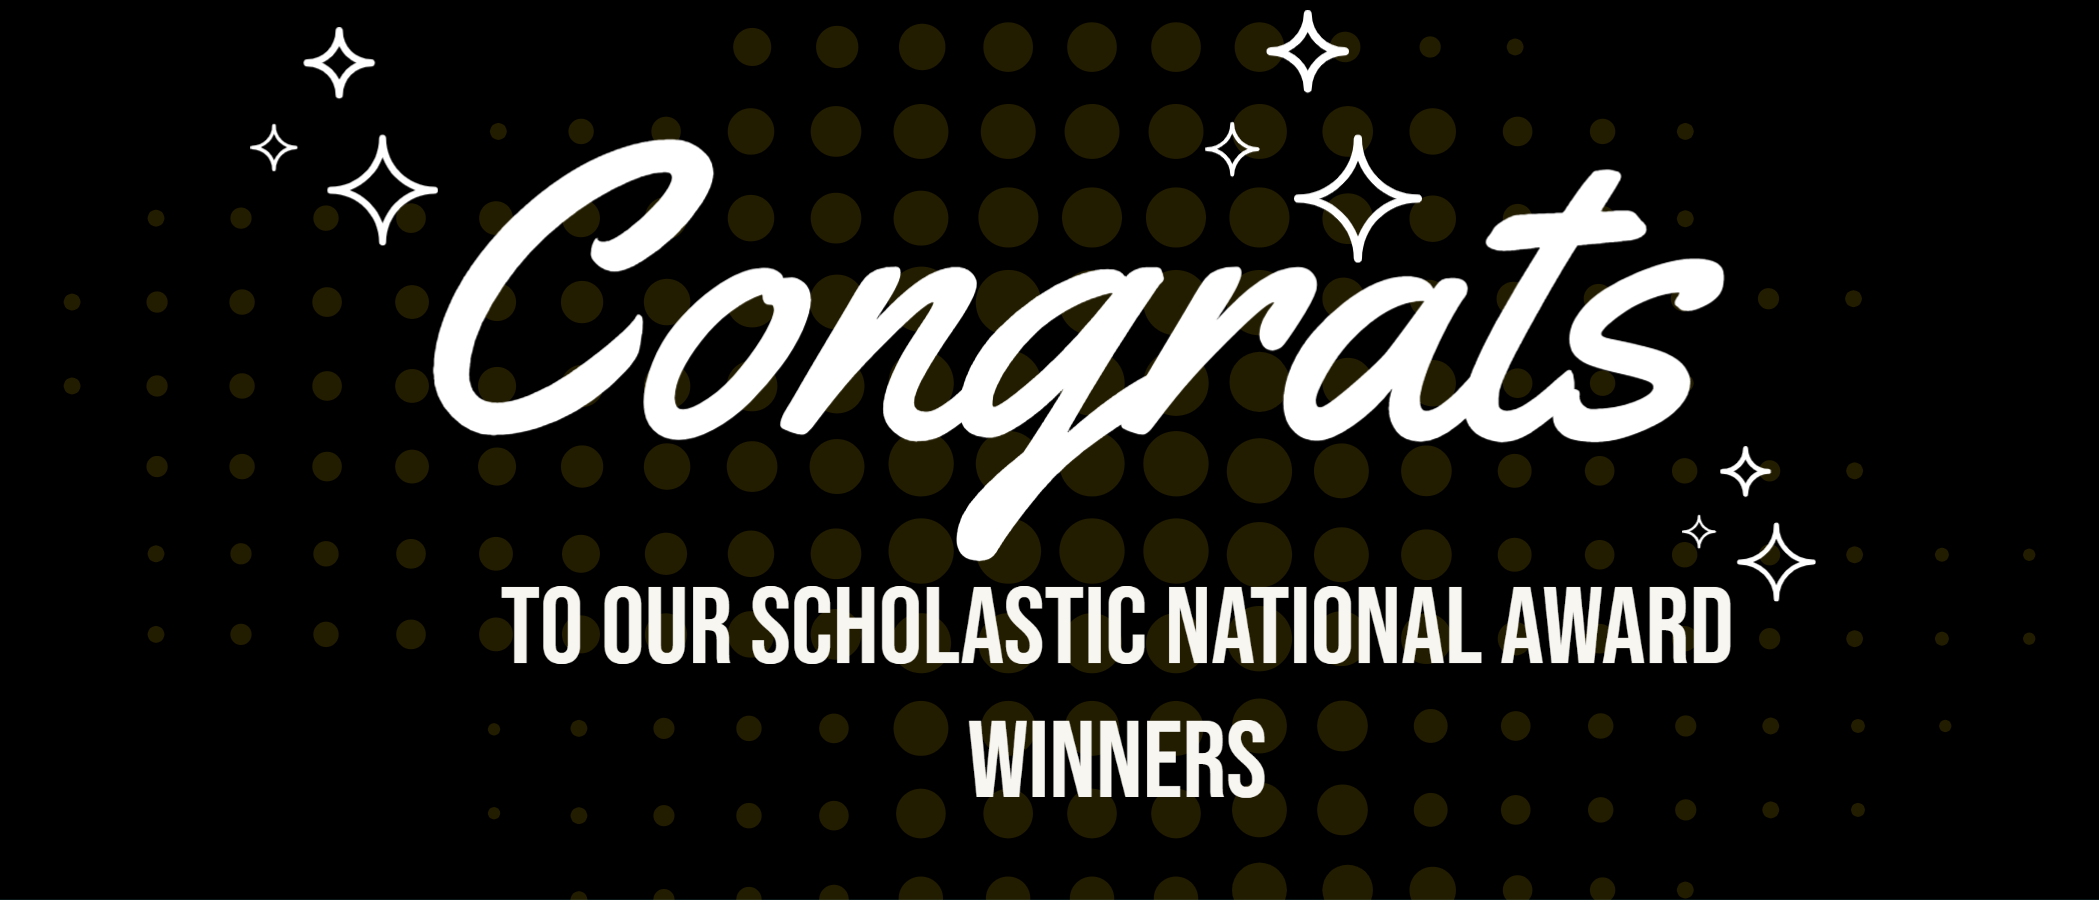 Congrats to our Scholastic National Award Winners! Click to view a list of Connecticut students receiving national Scholastic awards